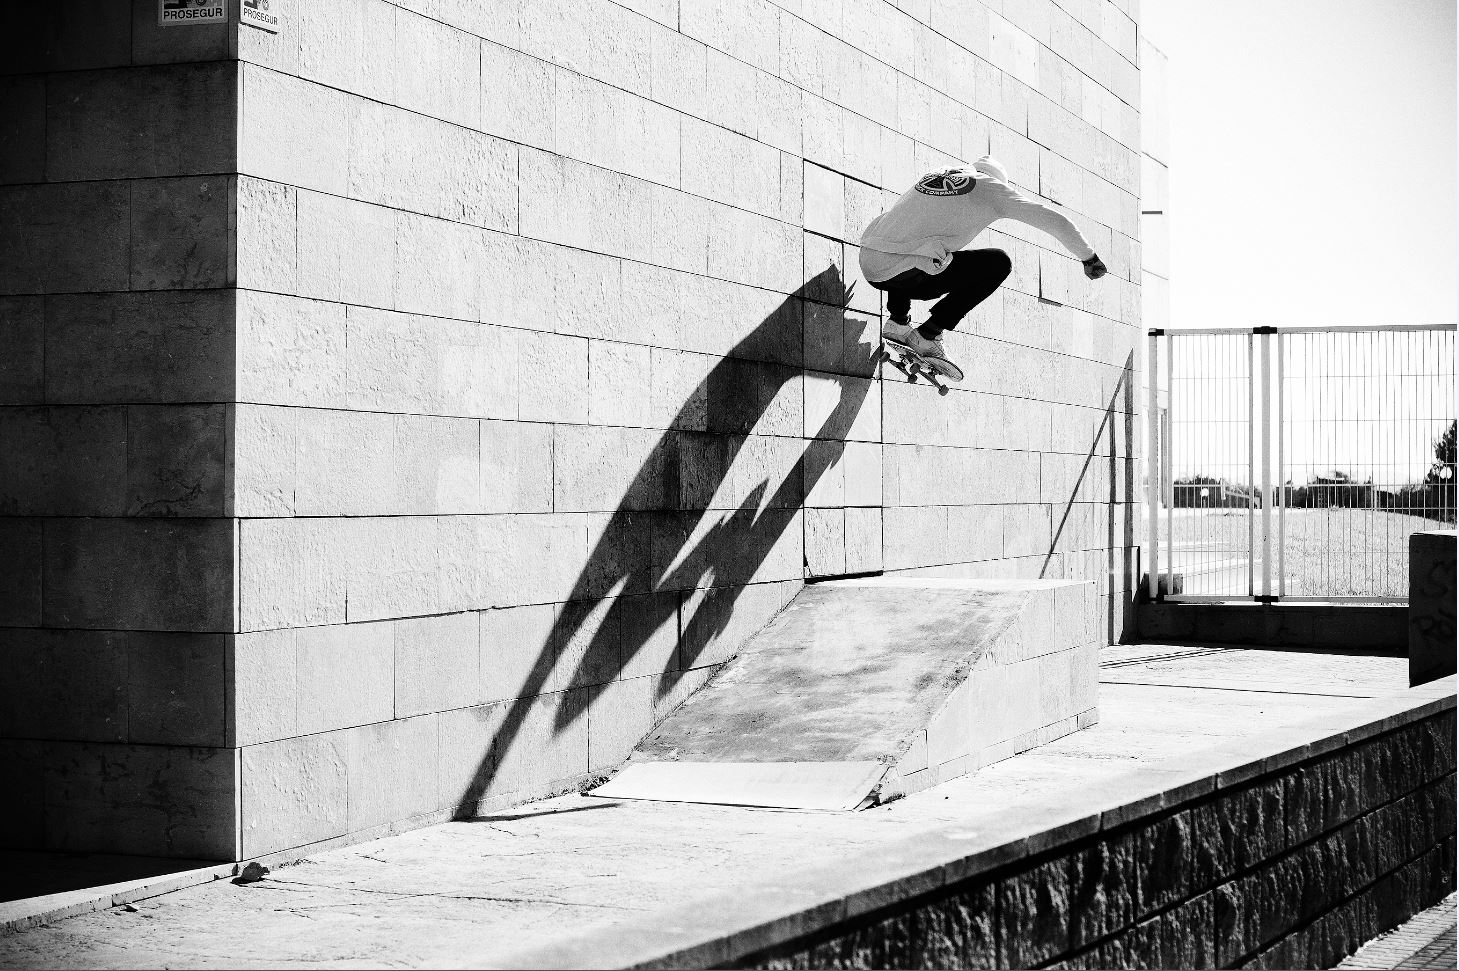 Kai Hillebrand - Wallride Nollie Out